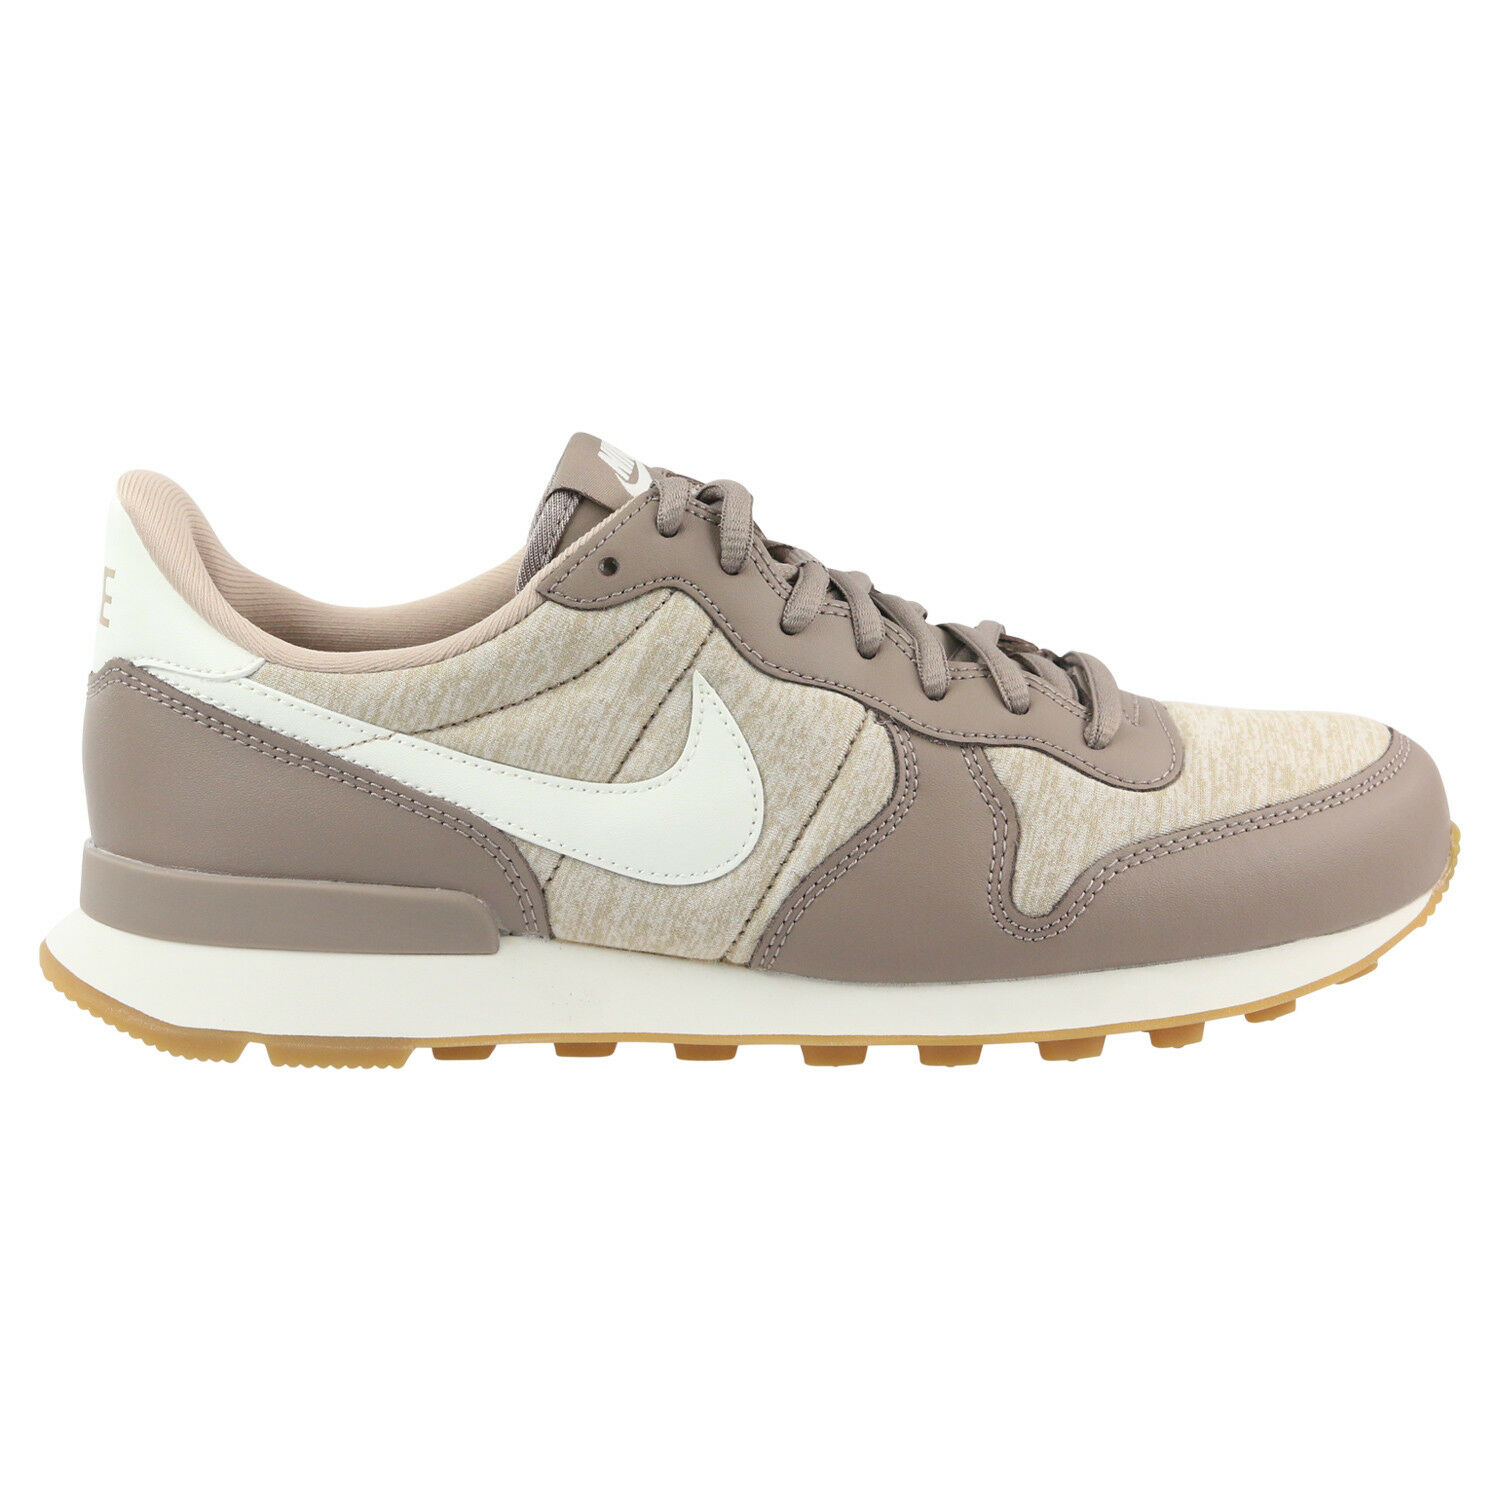 best service 79314 c2146 ... Nike Nike Nike Internationaliste se Premium Chaussures De Sport baskets  Femmes 79c325 ...